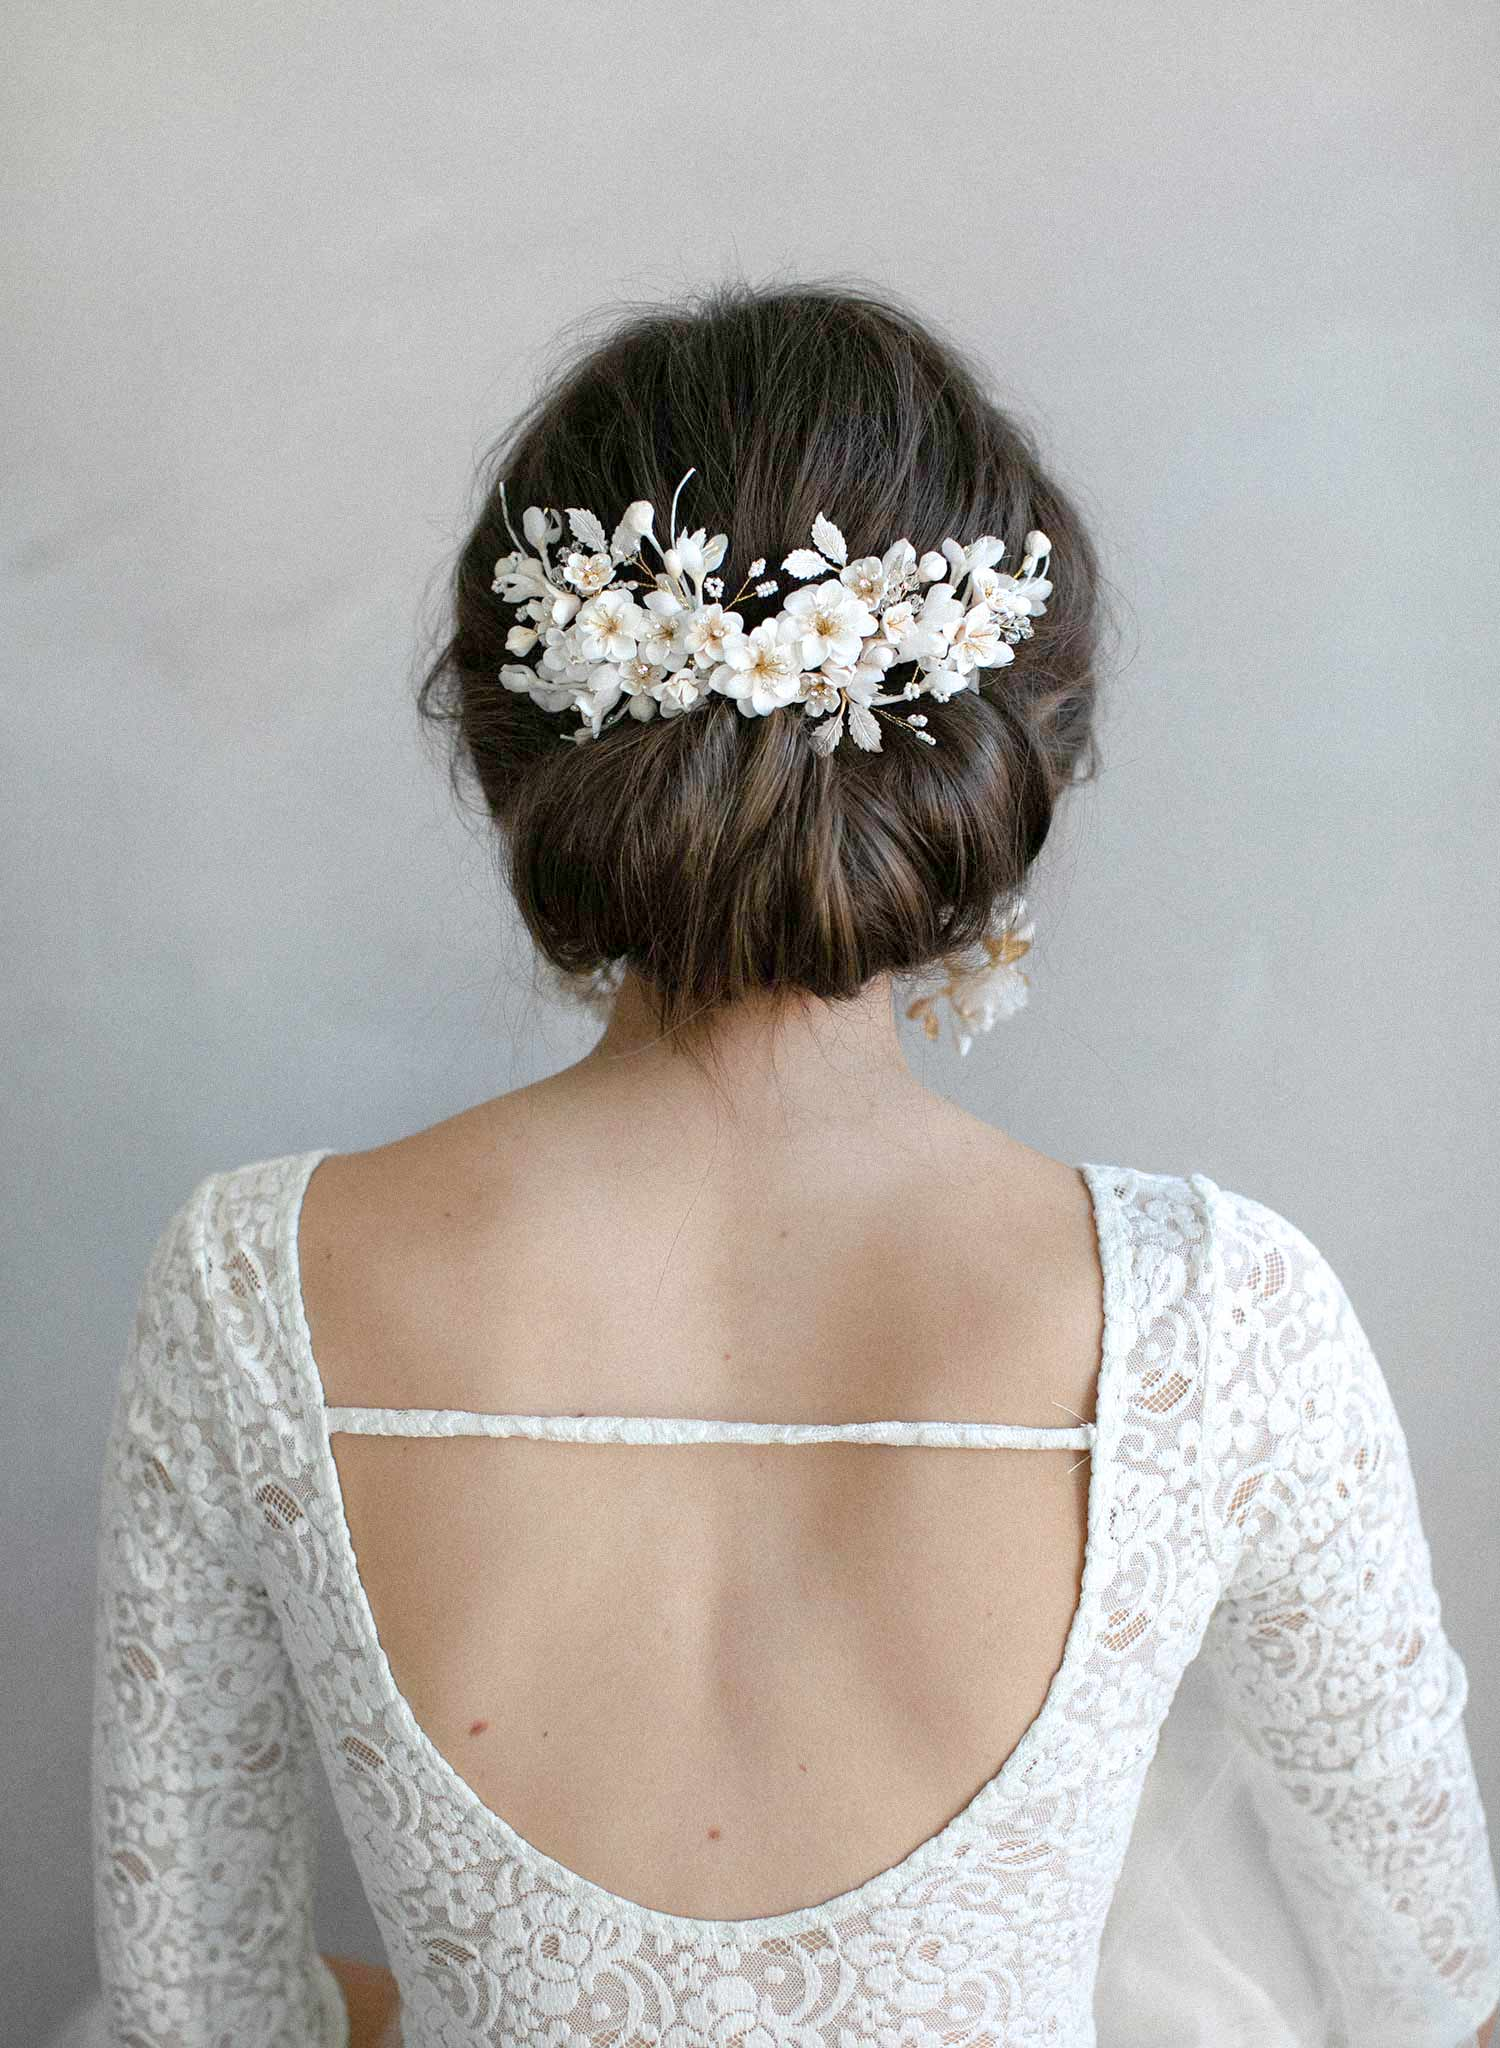 Creamy decadence floral headpiece - Style #939